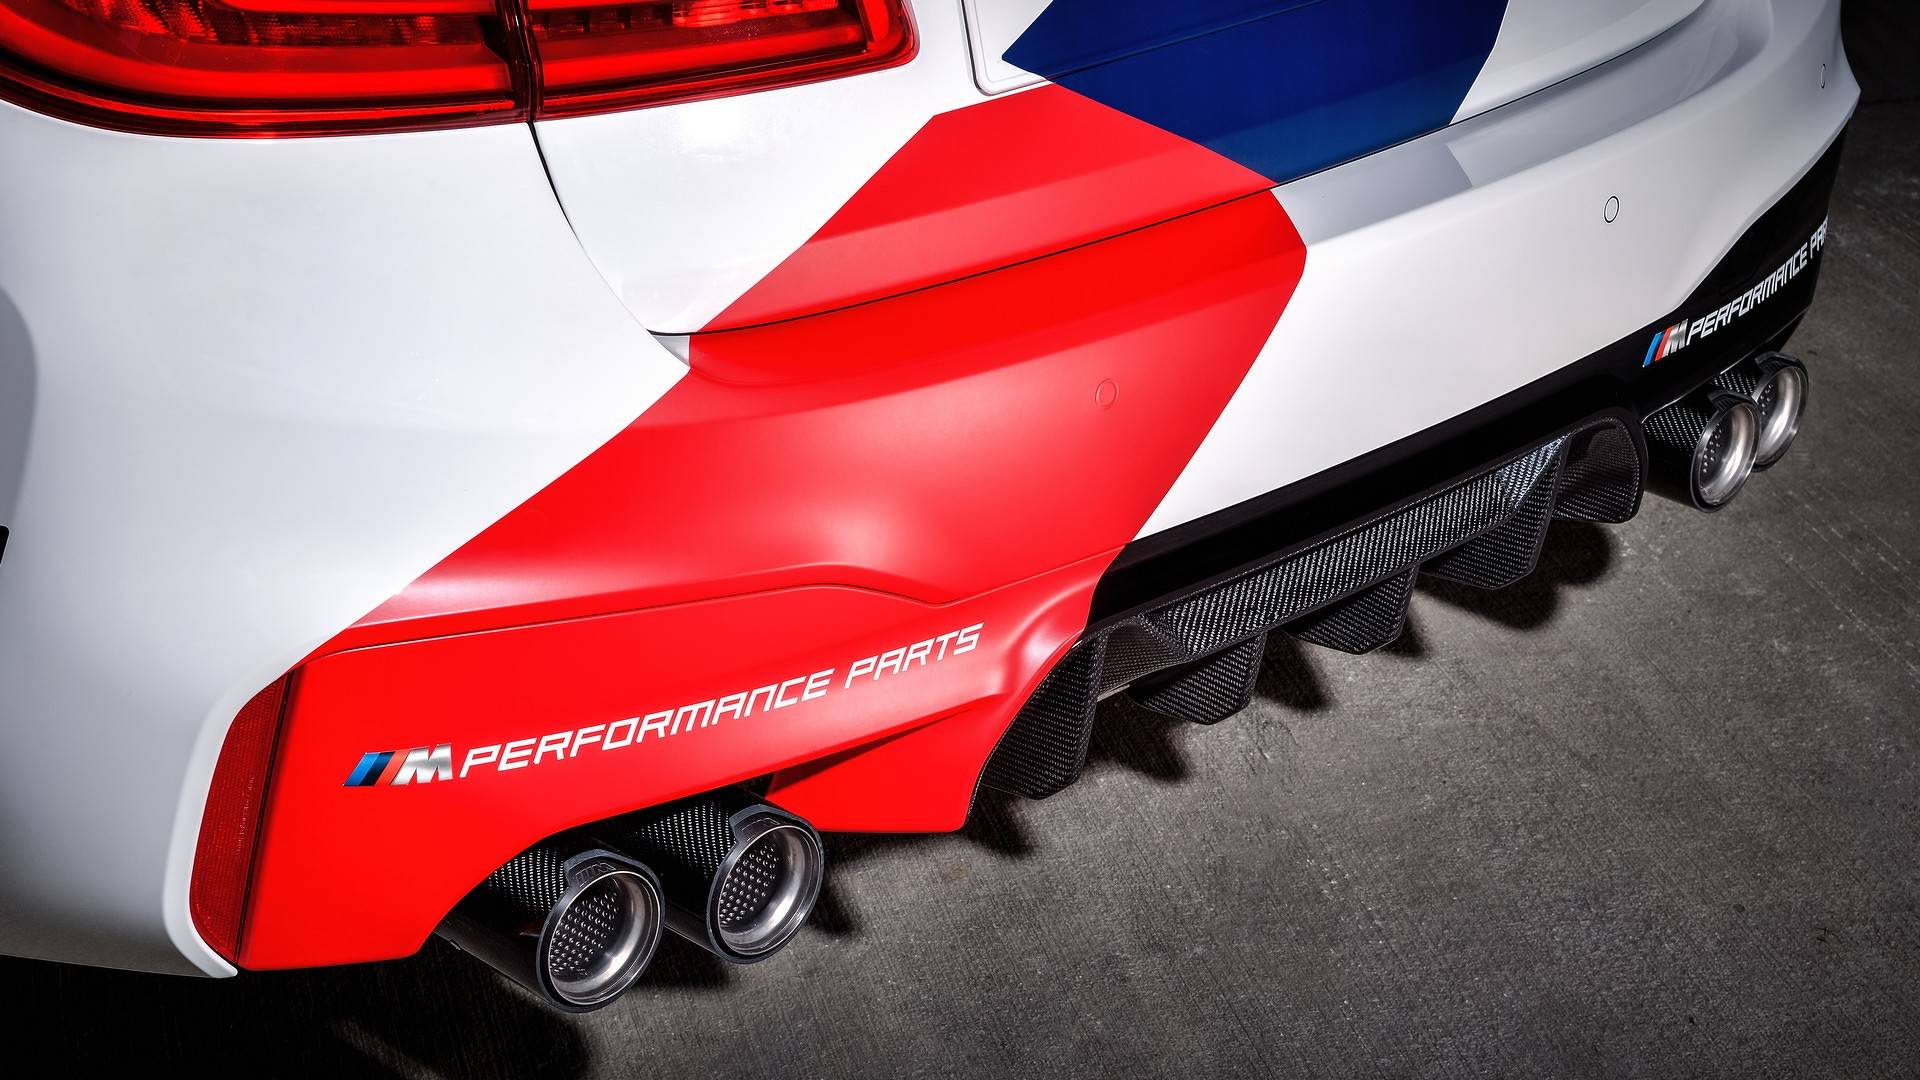 bmw-m5-motogp-safety-car (33)